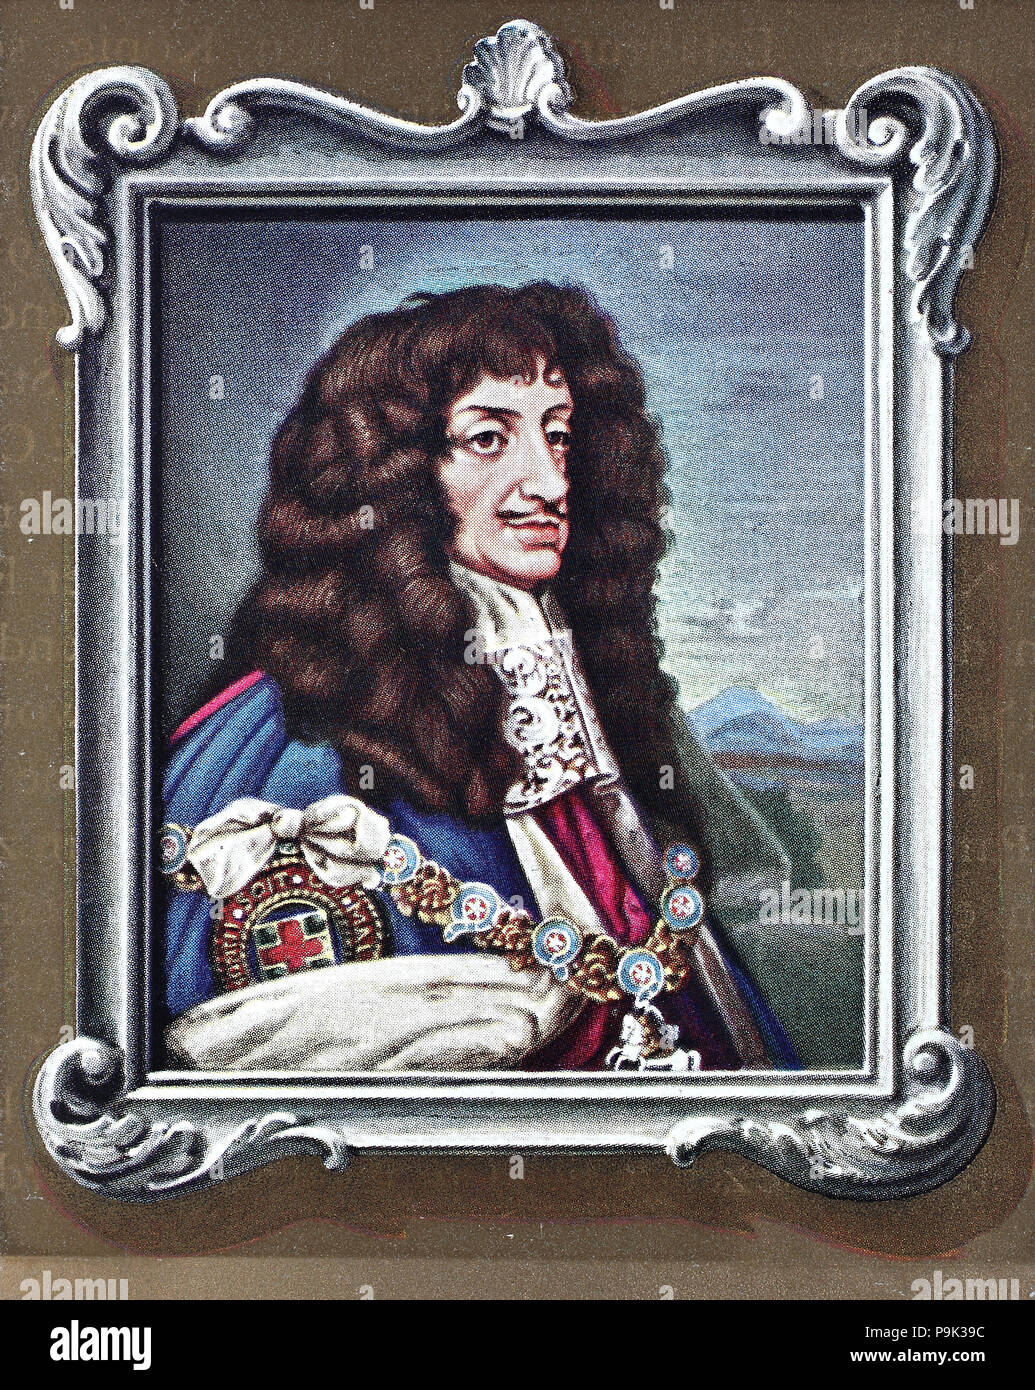 Charles II, 29 May 1630 – 6 February 1685, was king of England, Scotland and Ireland. He was king of Scotland from 1649 until his deposition in 1651, and king of England, Scotland and Ireland from the restoration of the monarchy in 1660 until his death, digital improved reproduction of an original print from the year 1900 - Stock Image